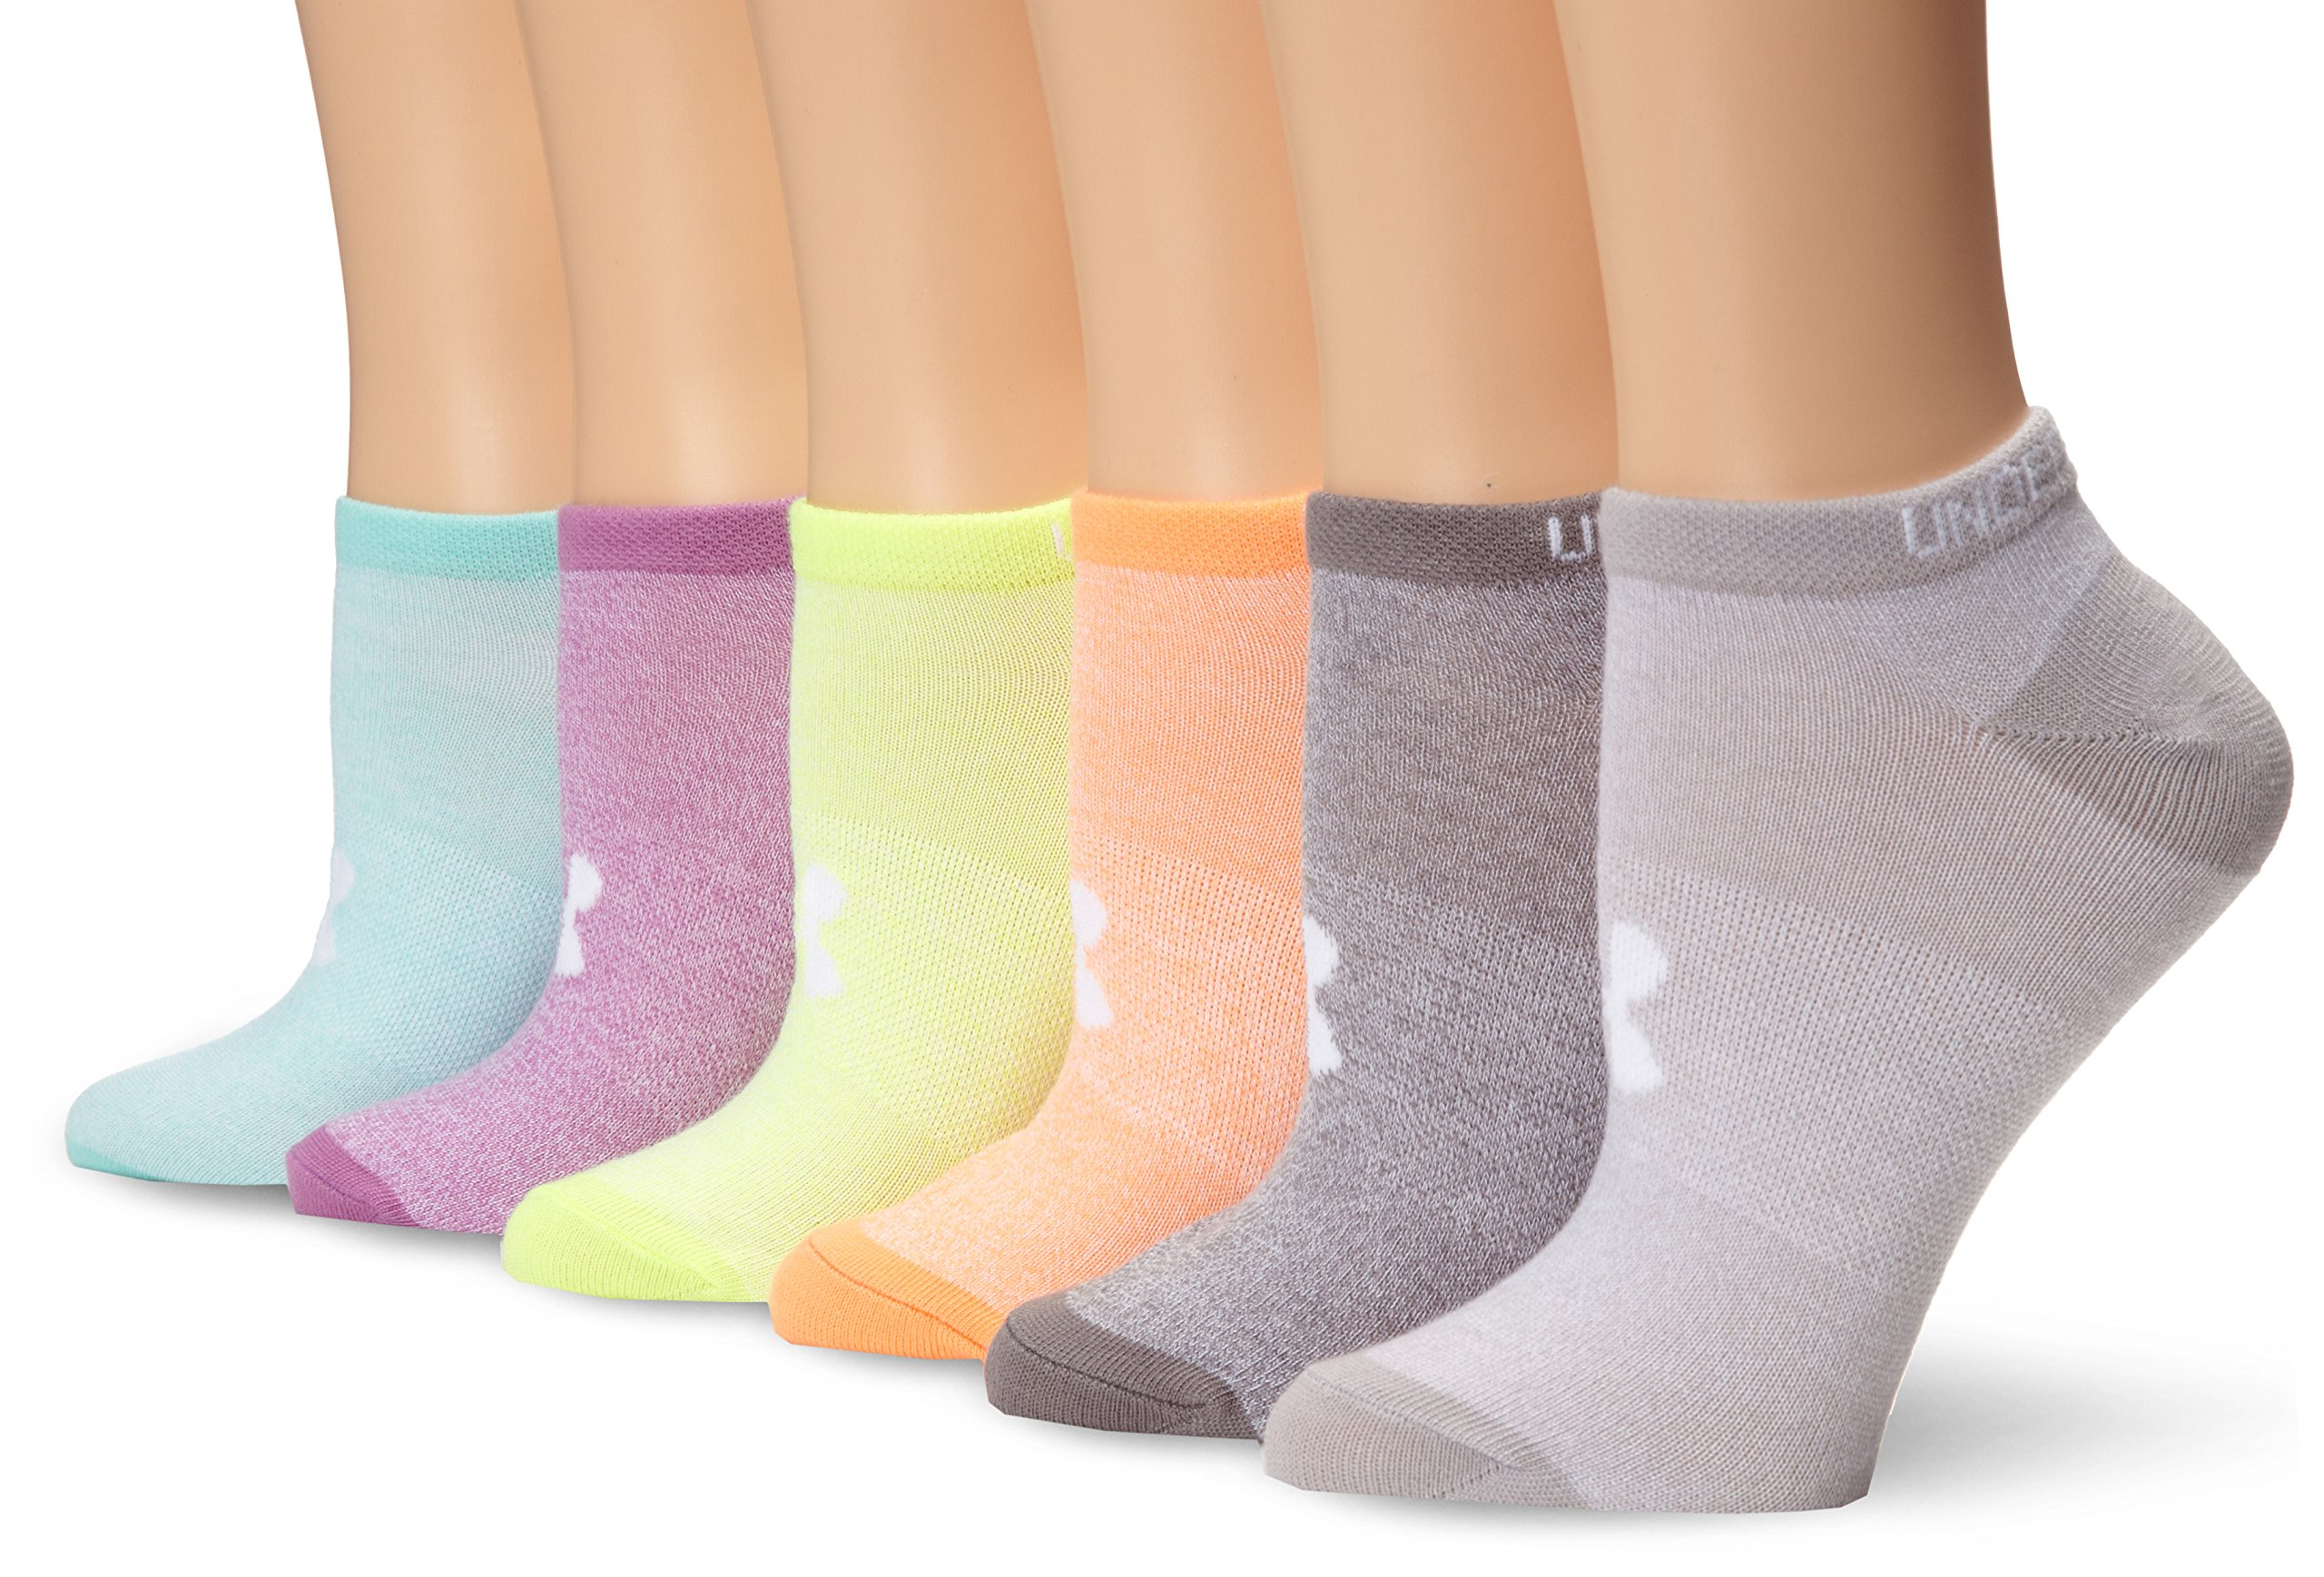 Under Armour Women's Liner No-Show Socks (6 Pairs), Marl/Assorted Colors, Medium